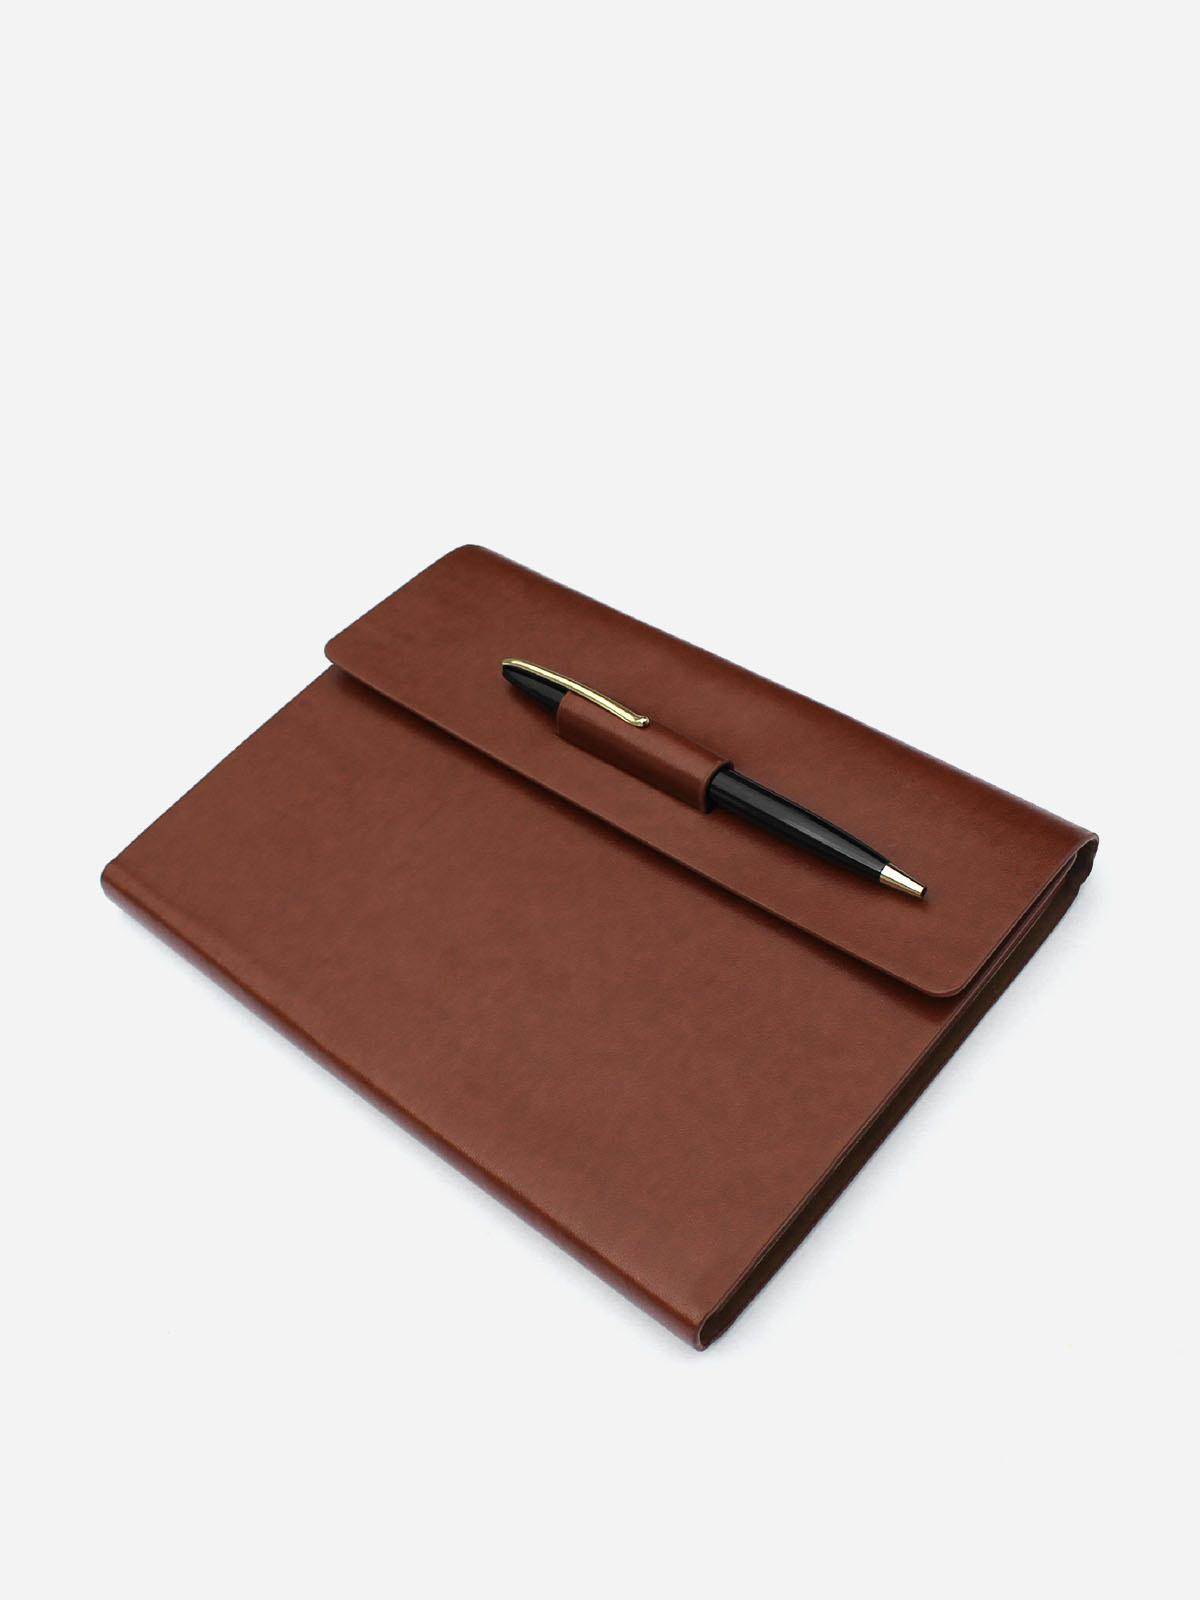 leather journal with pen holder